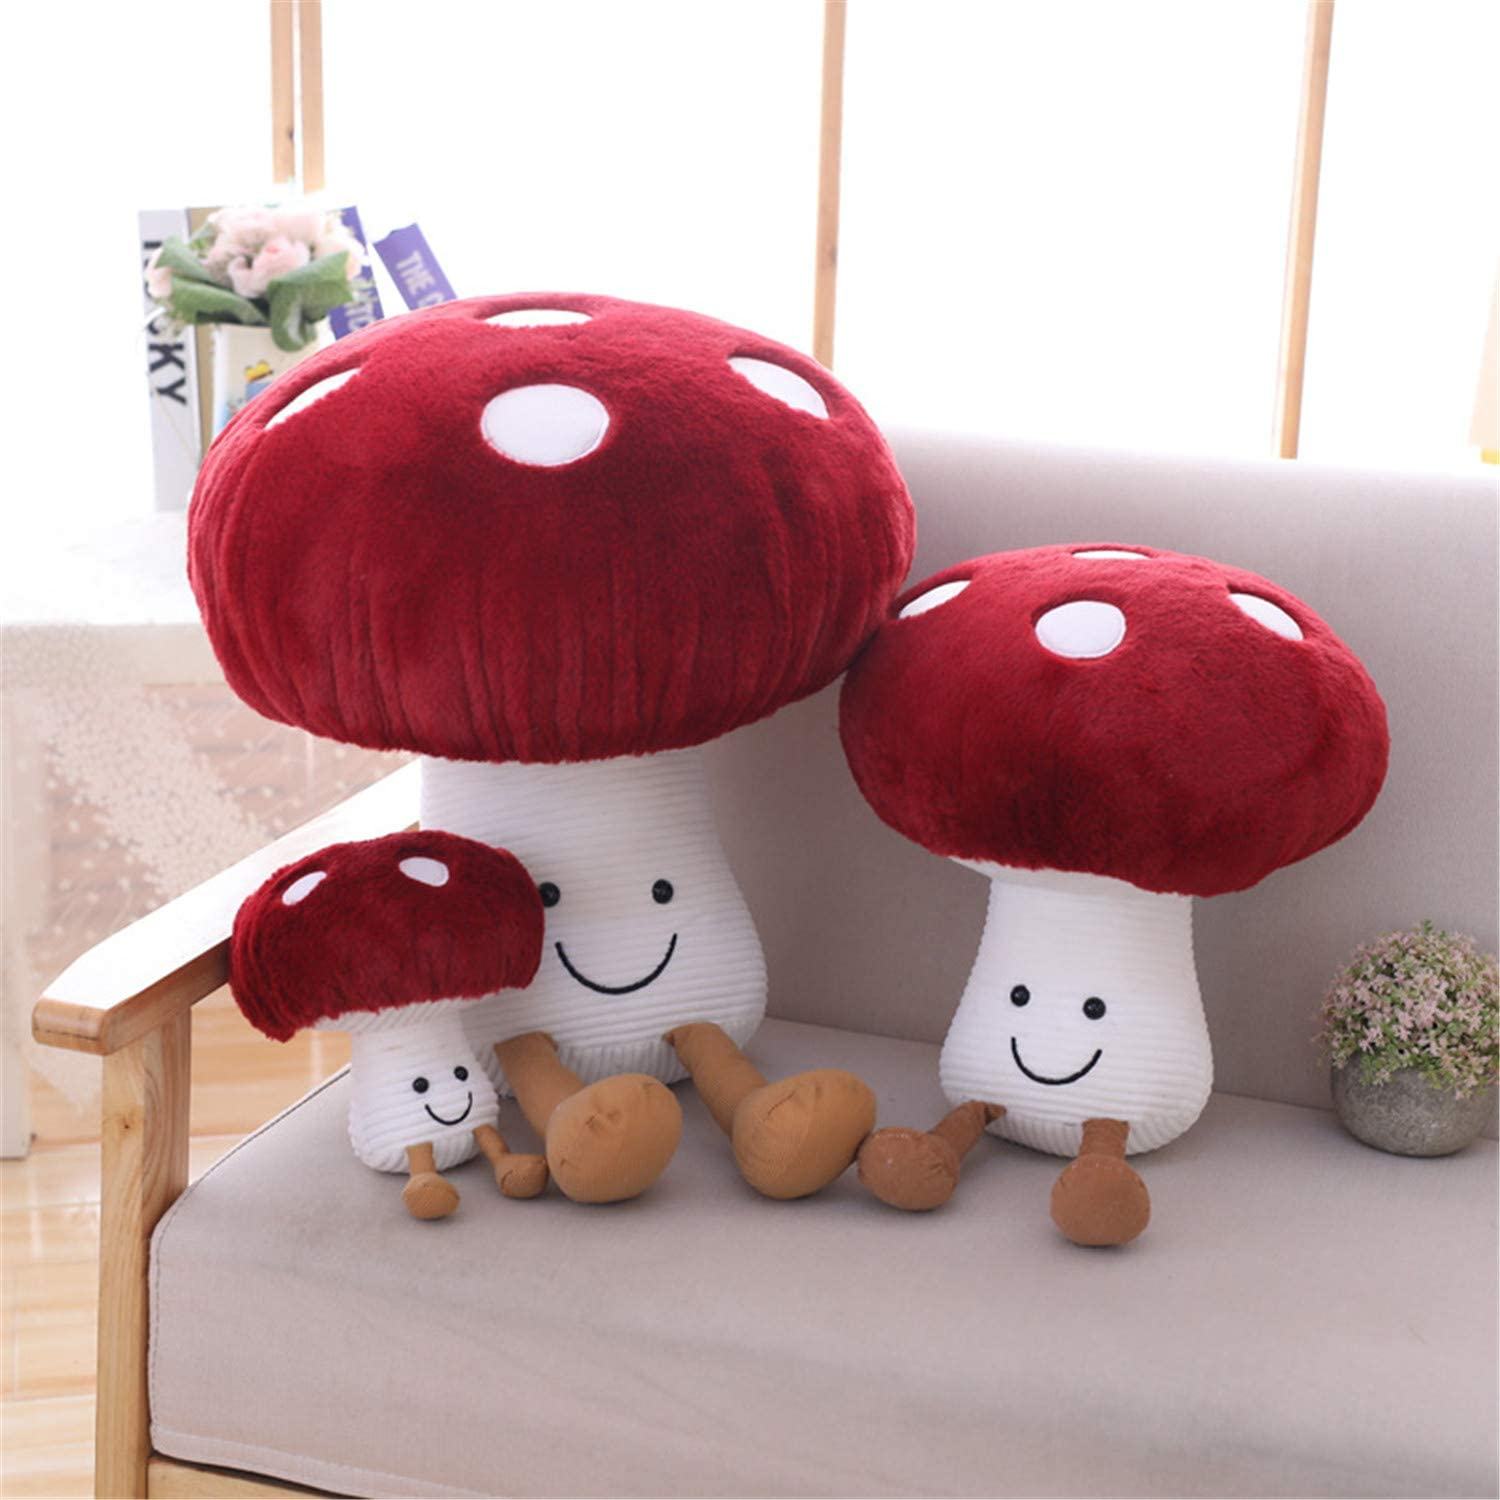 SPING DAWN Mushroom Pillows for Beds and Sofas 7.8inches Fun Plush Toys and Home Decor Items